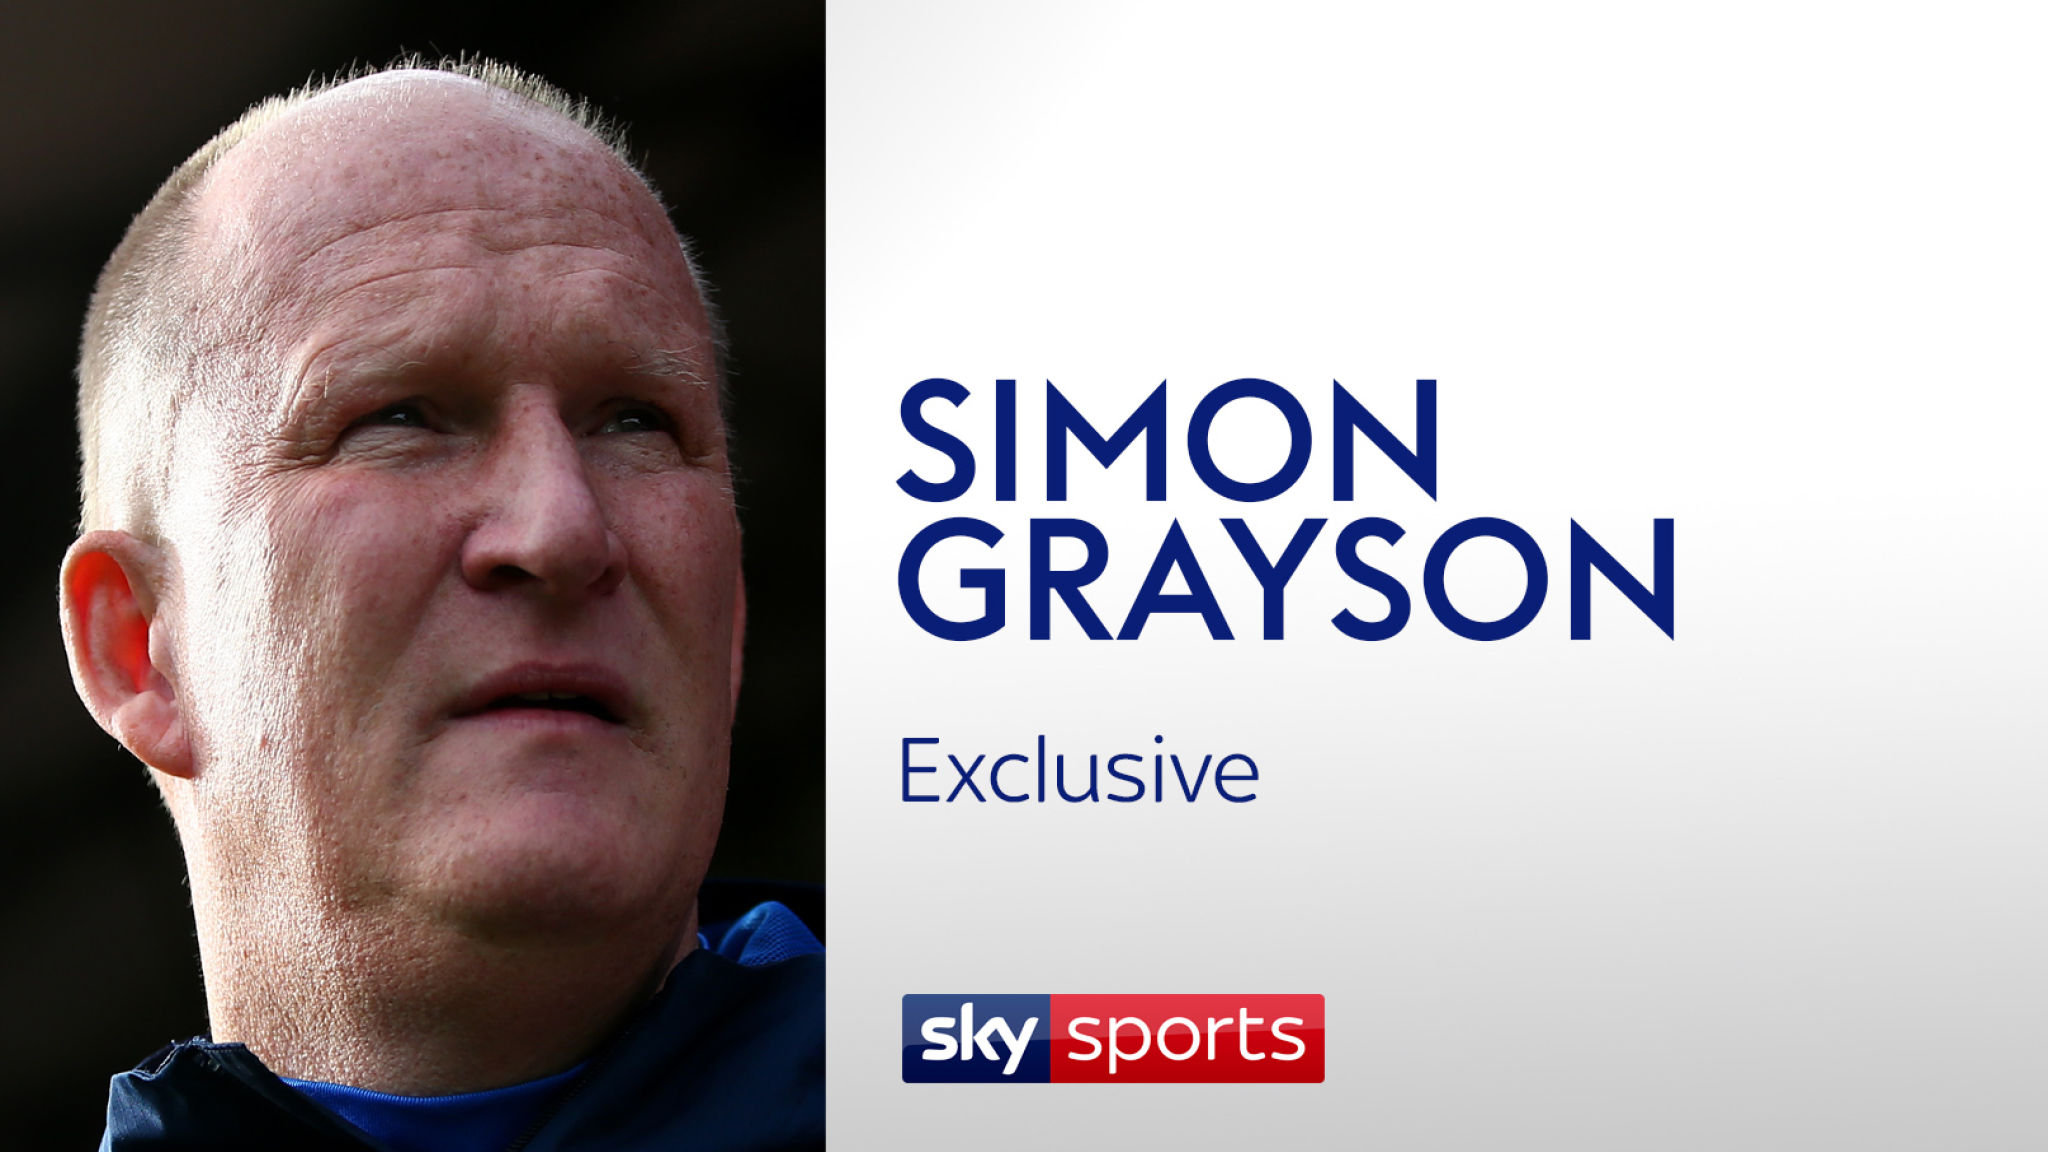 Simon Grayson interview Why it all went wrong for him at 2048x1152